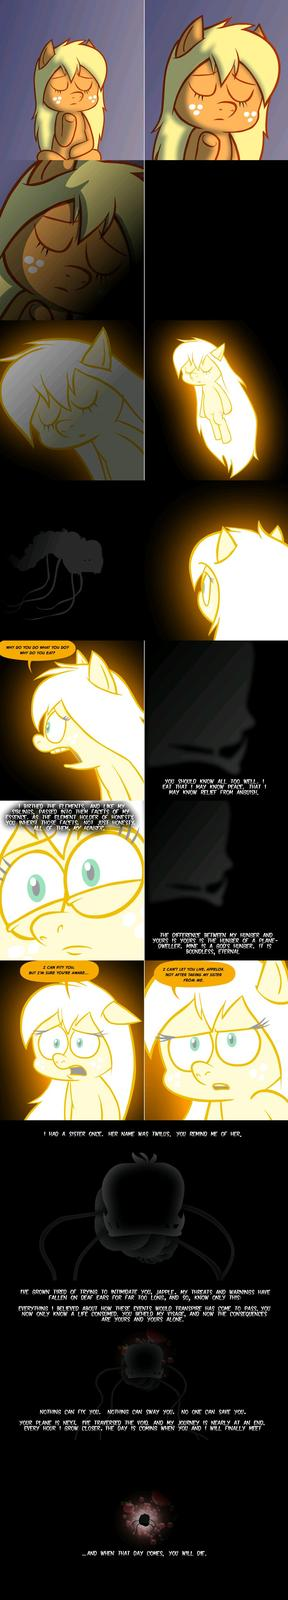 Japplejack: Chapter III - Part 6